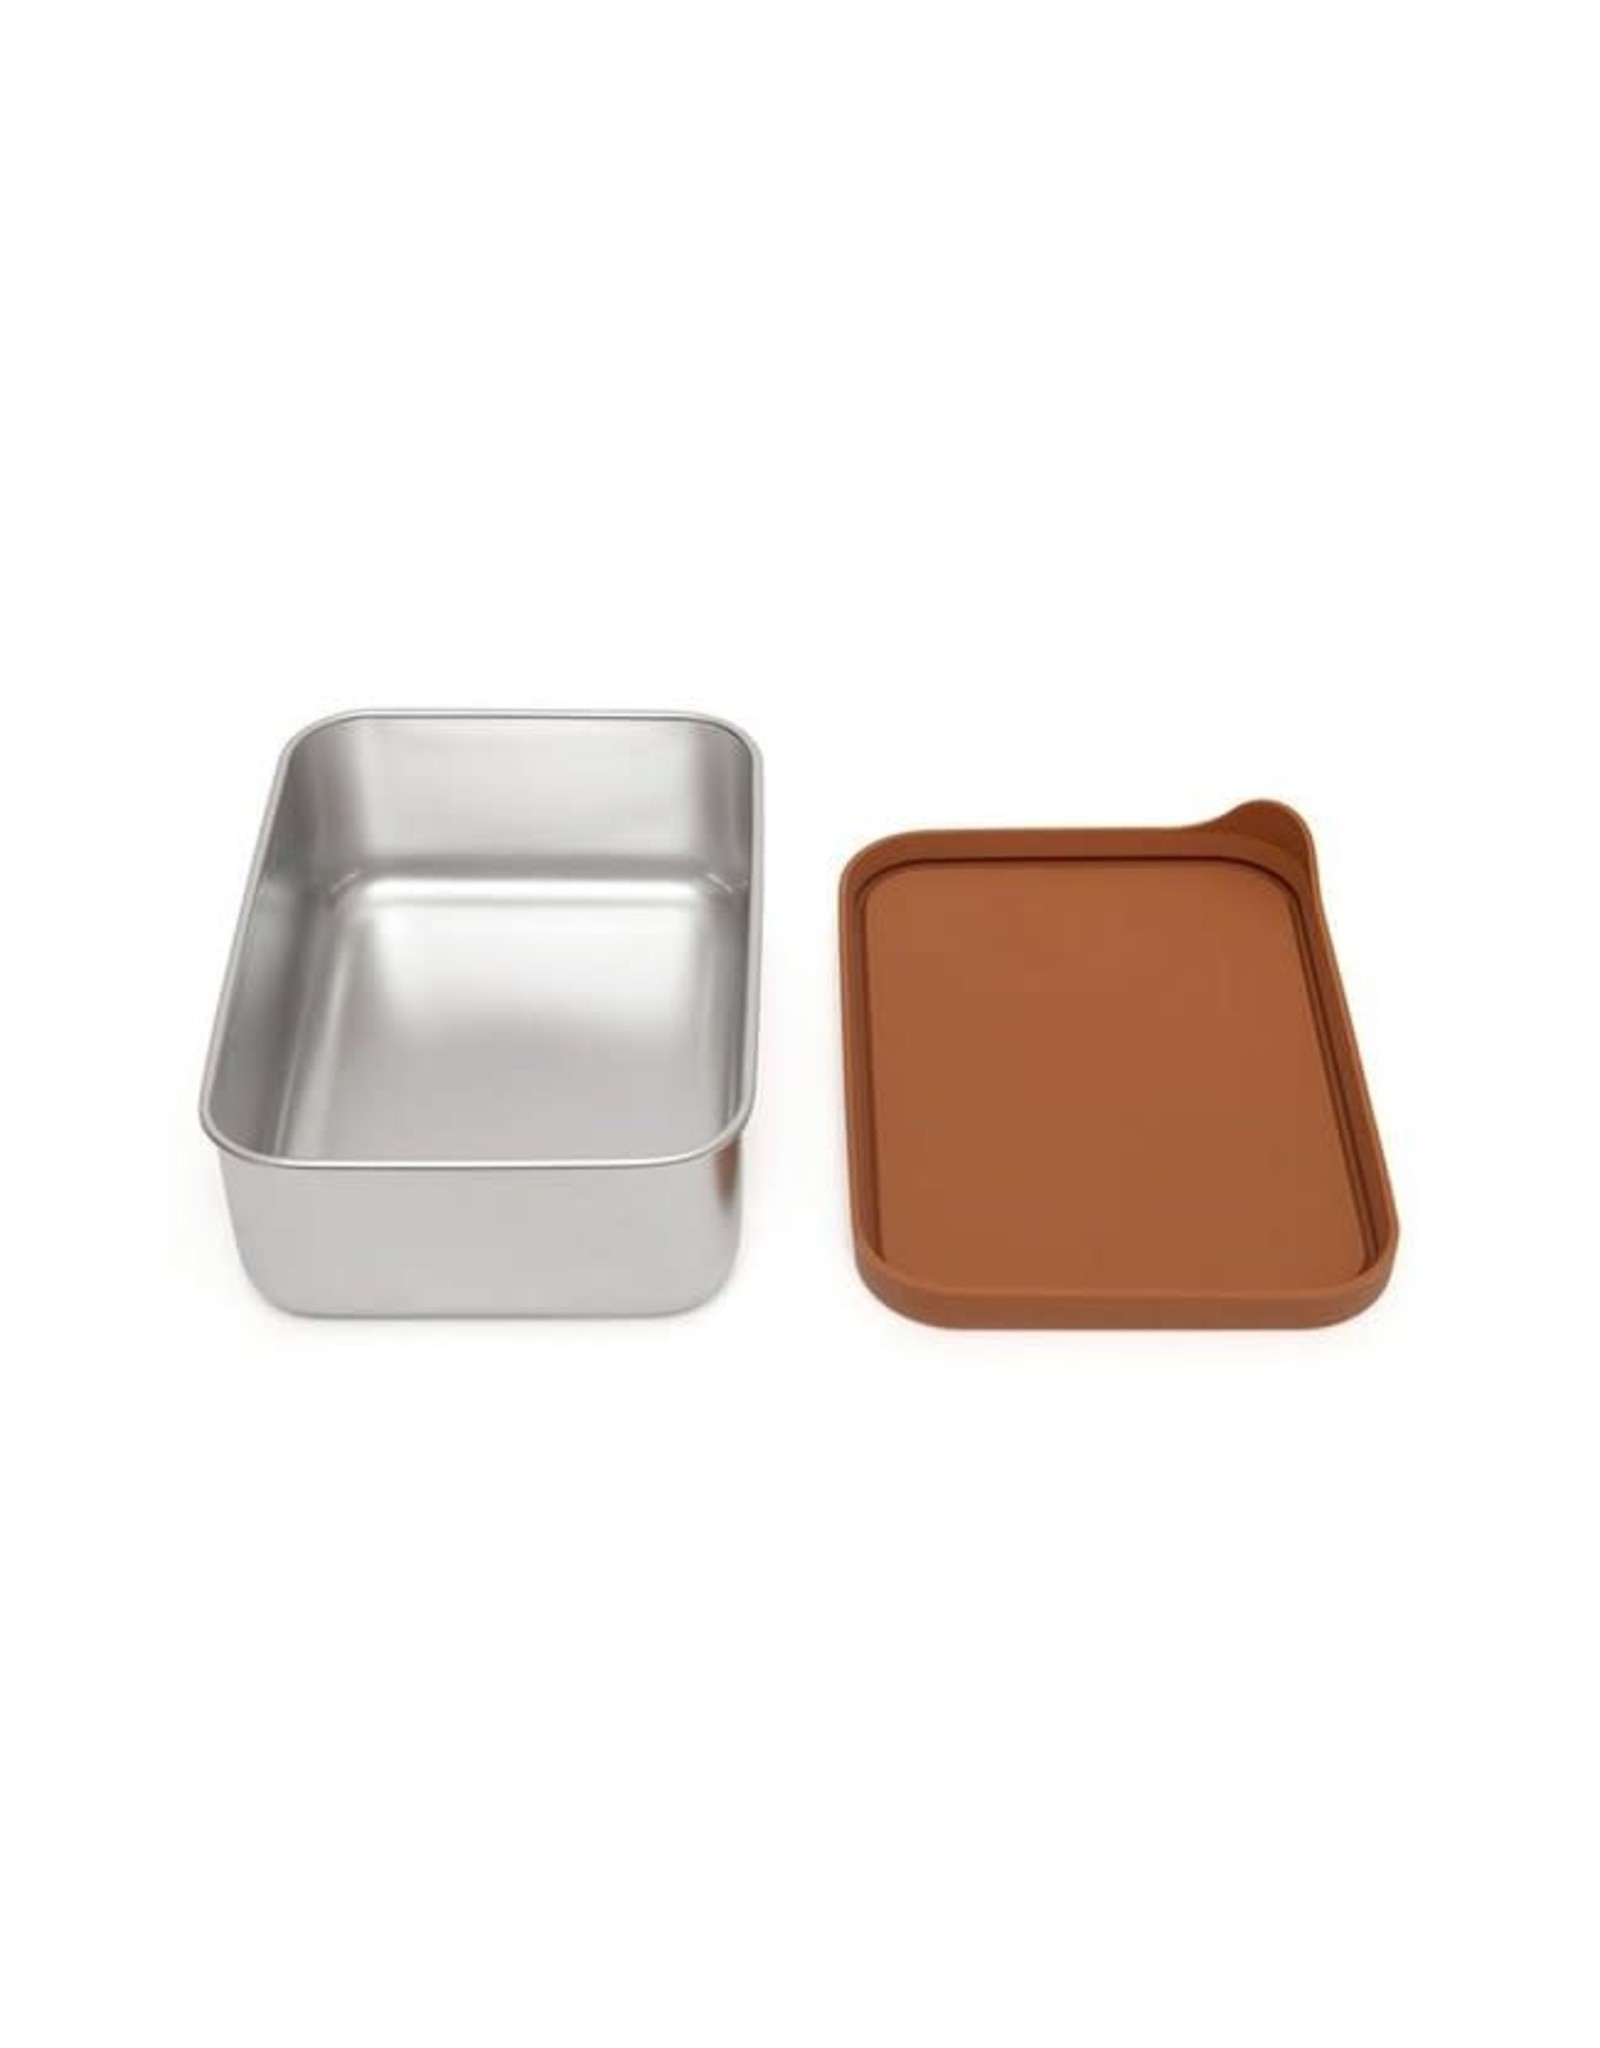 Petit Monkey stainless steel lunchbox baked clay